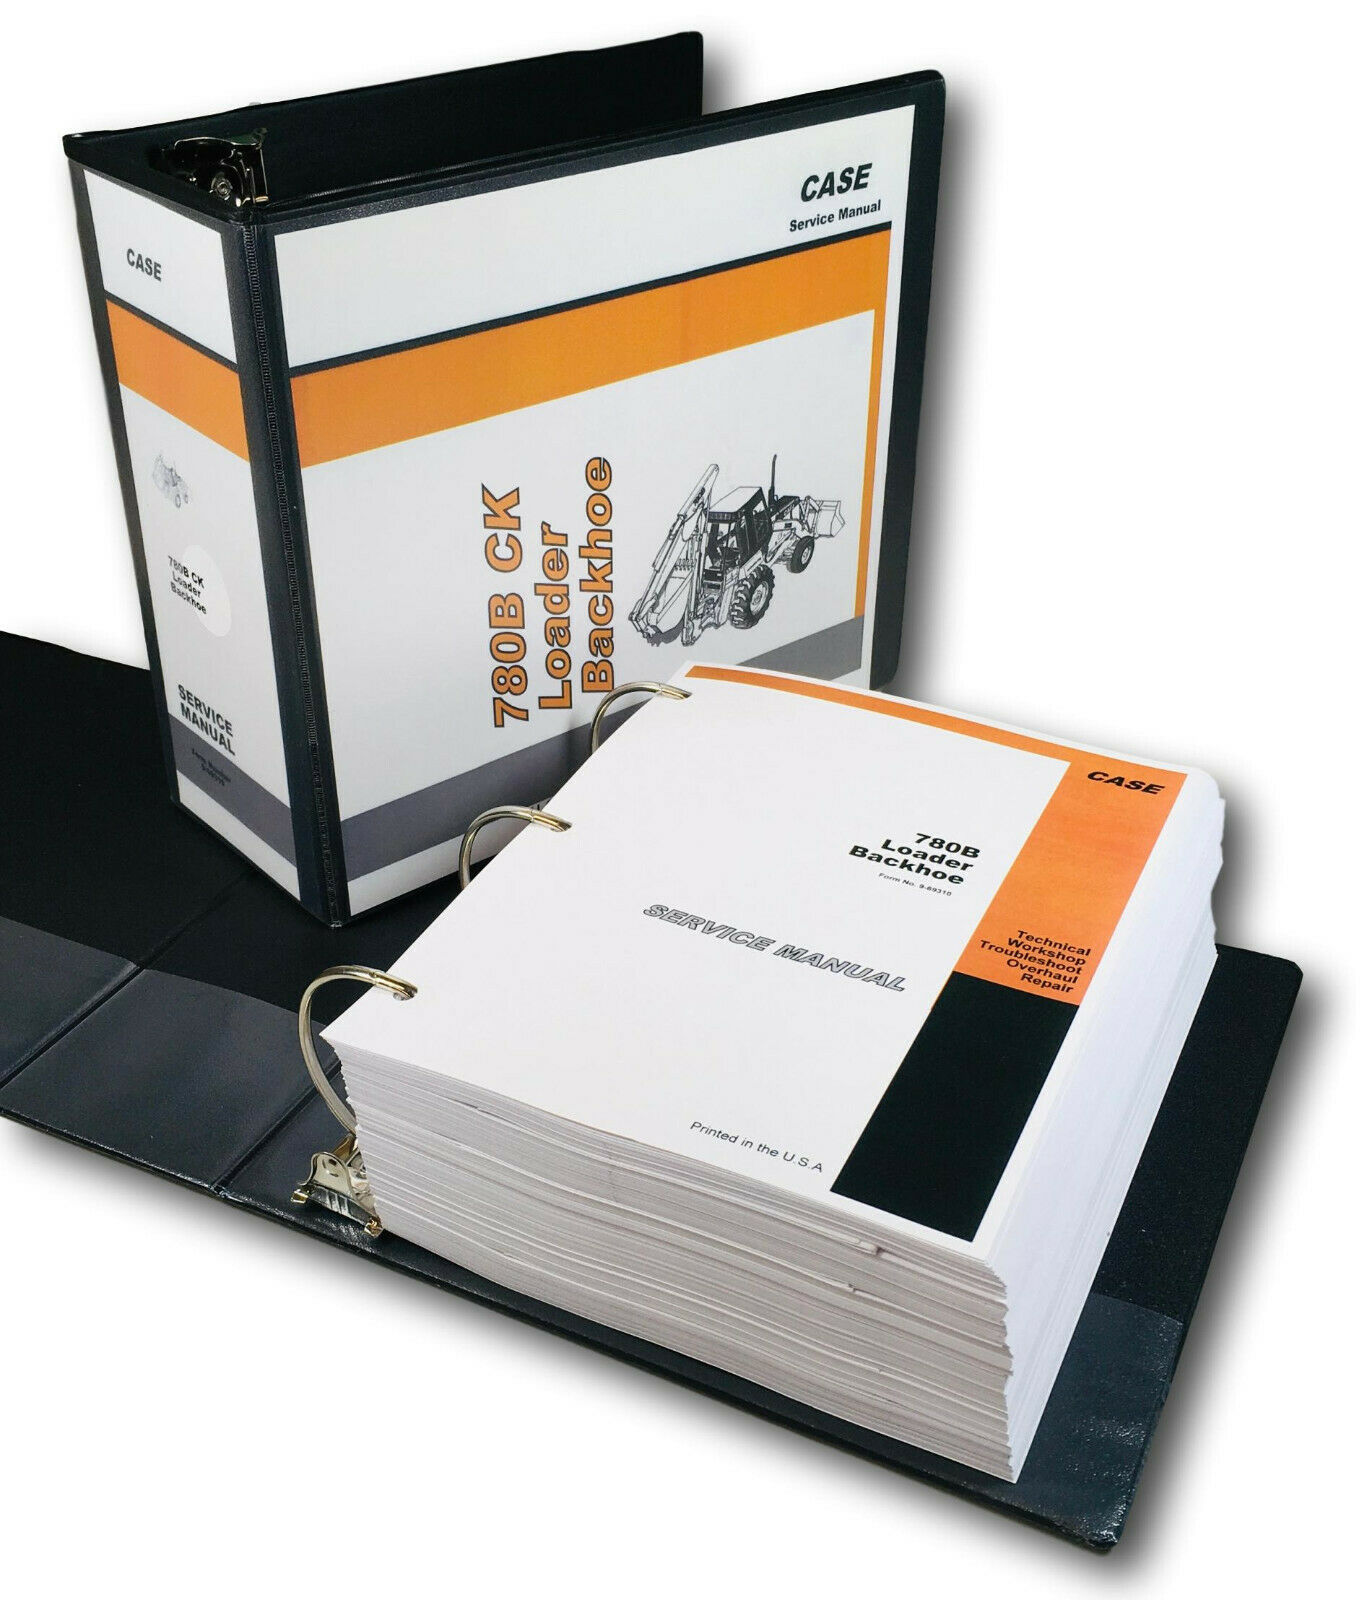 Case 780B Ck Tractor Loader Backhoe Service Technical Manual Repair Shop  Binder 1 of 12FREE Shipping ...